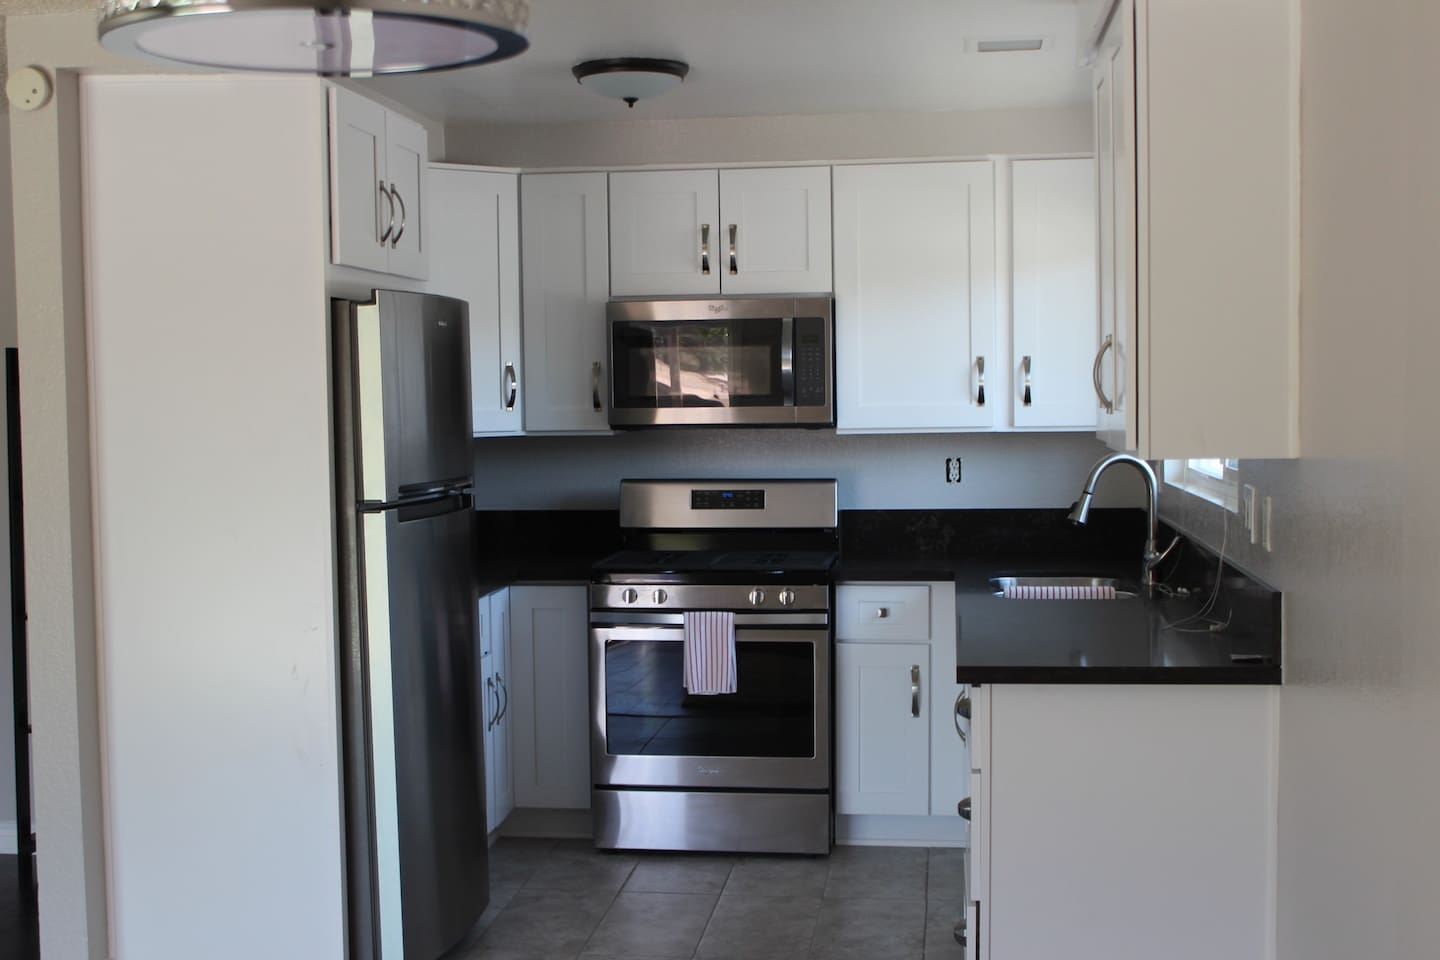 Fully equipped kitchen w/ new appliances, pots, pans, dish washer, toaster, tea kettle and coffee maker.